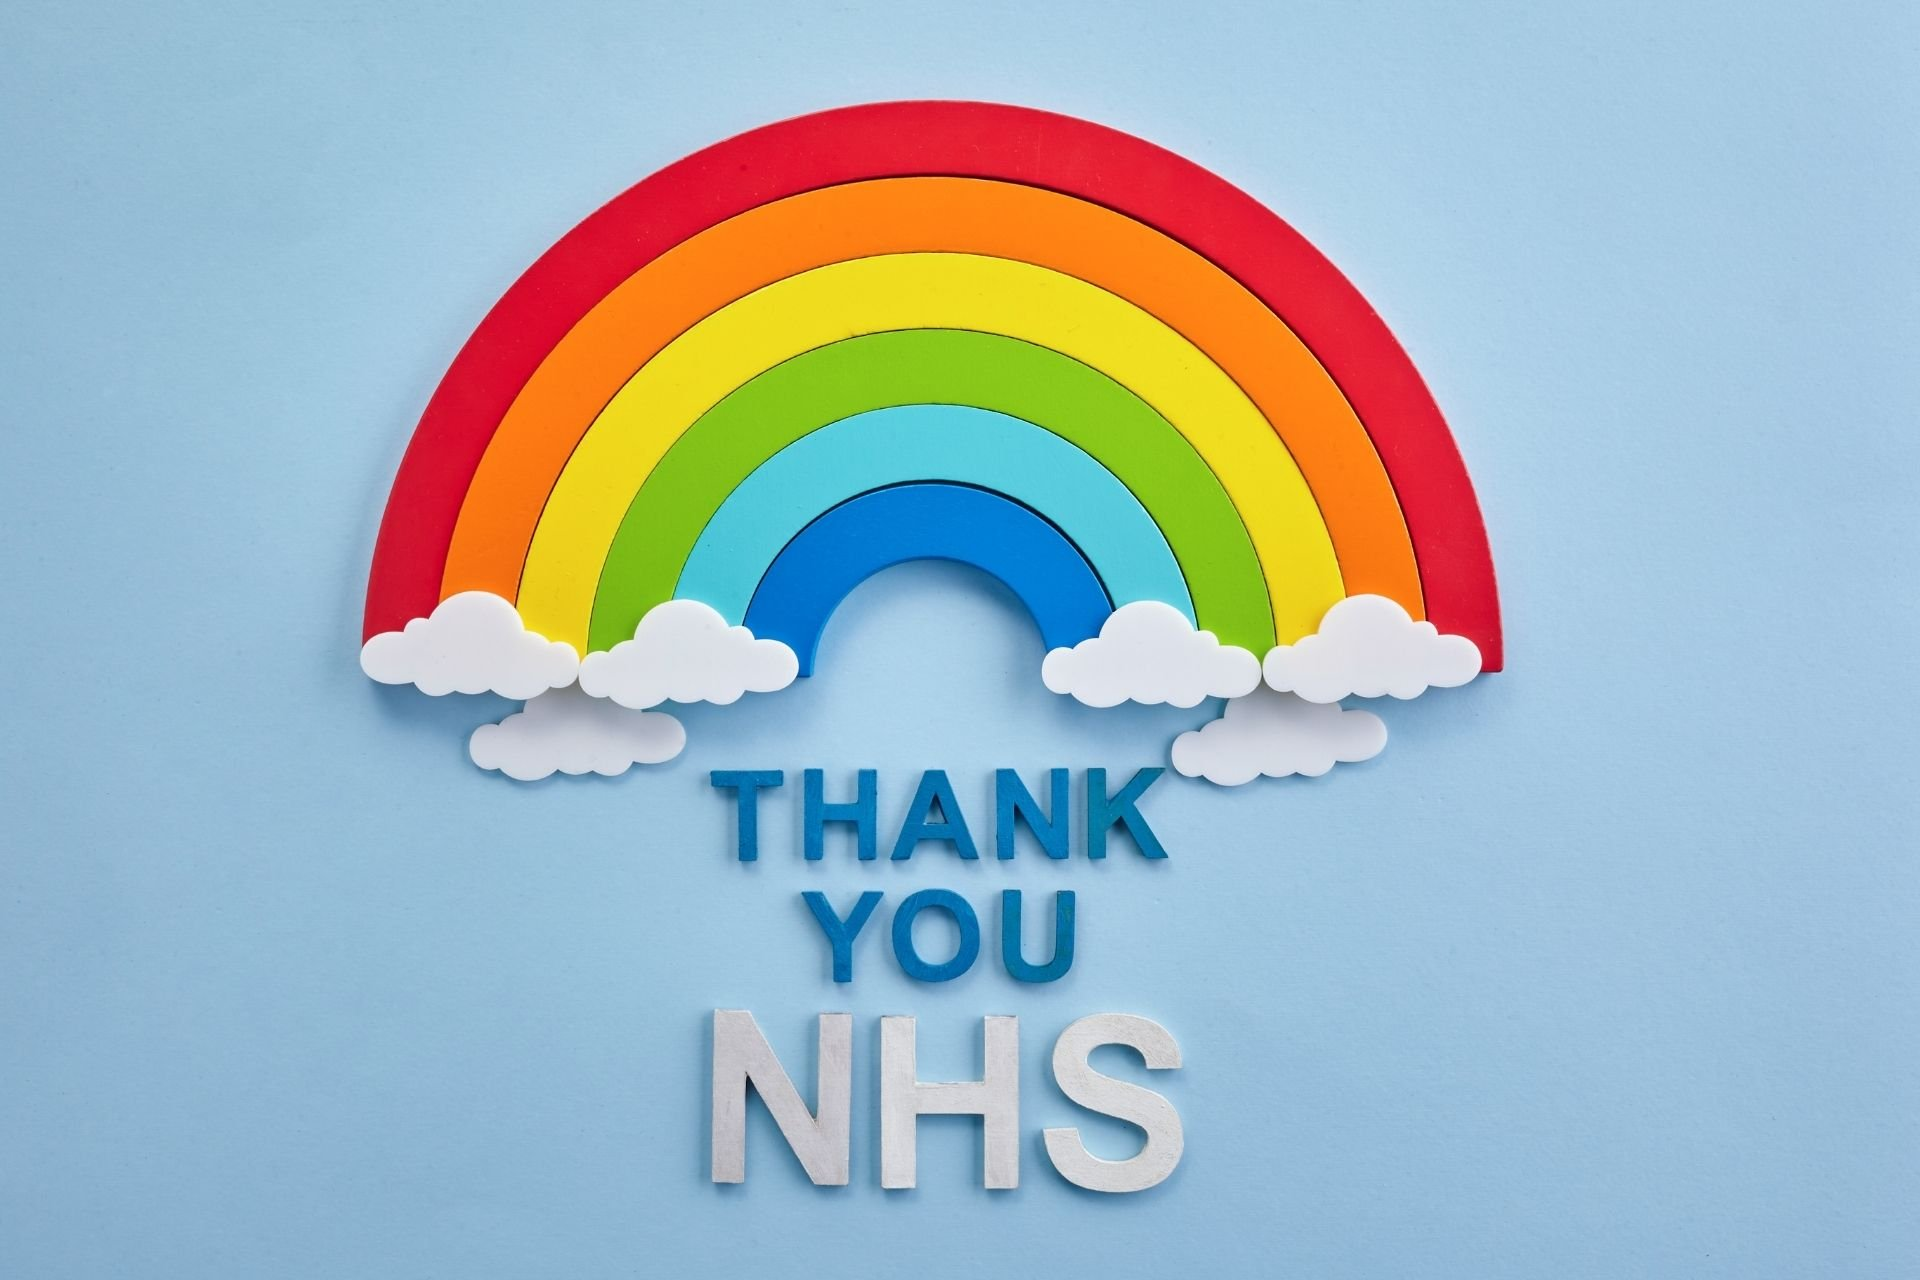 NHS Discount Event: Image of a rainbow with wording beneath reading 'Thank You NHS'.